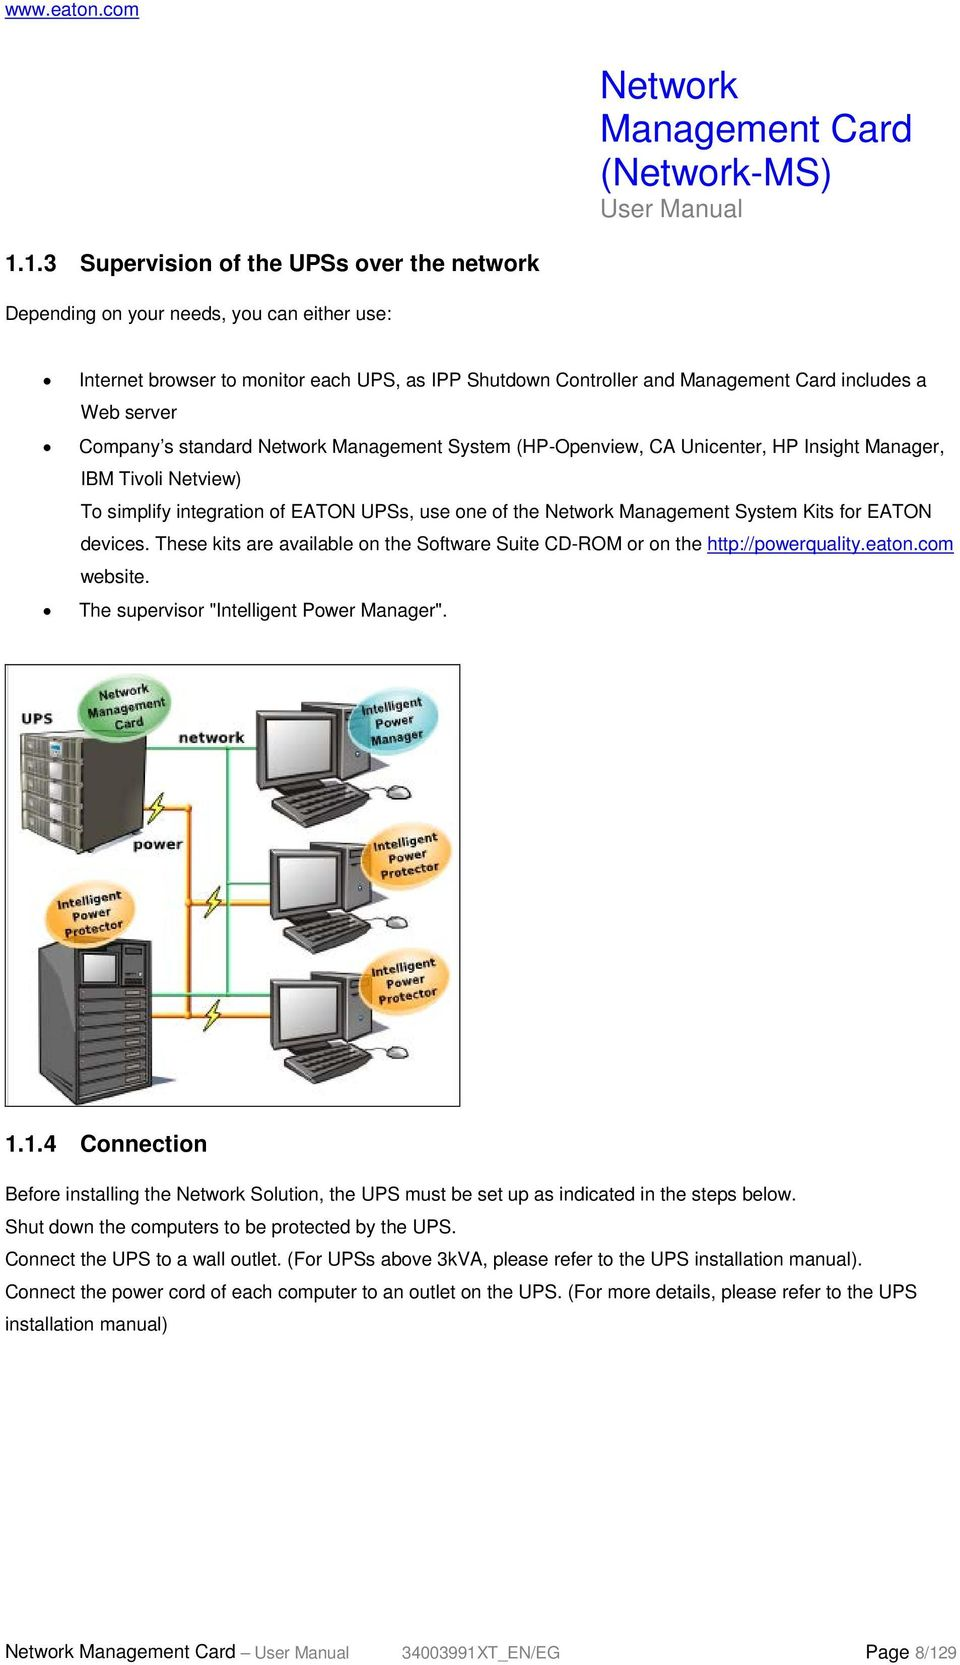 Network Management Card Ms User Manual Pdf Power Over Ethernet Wiring Diagram Interface Schematic These Kits Are Available On The Software Suite Cd Rom Or Http